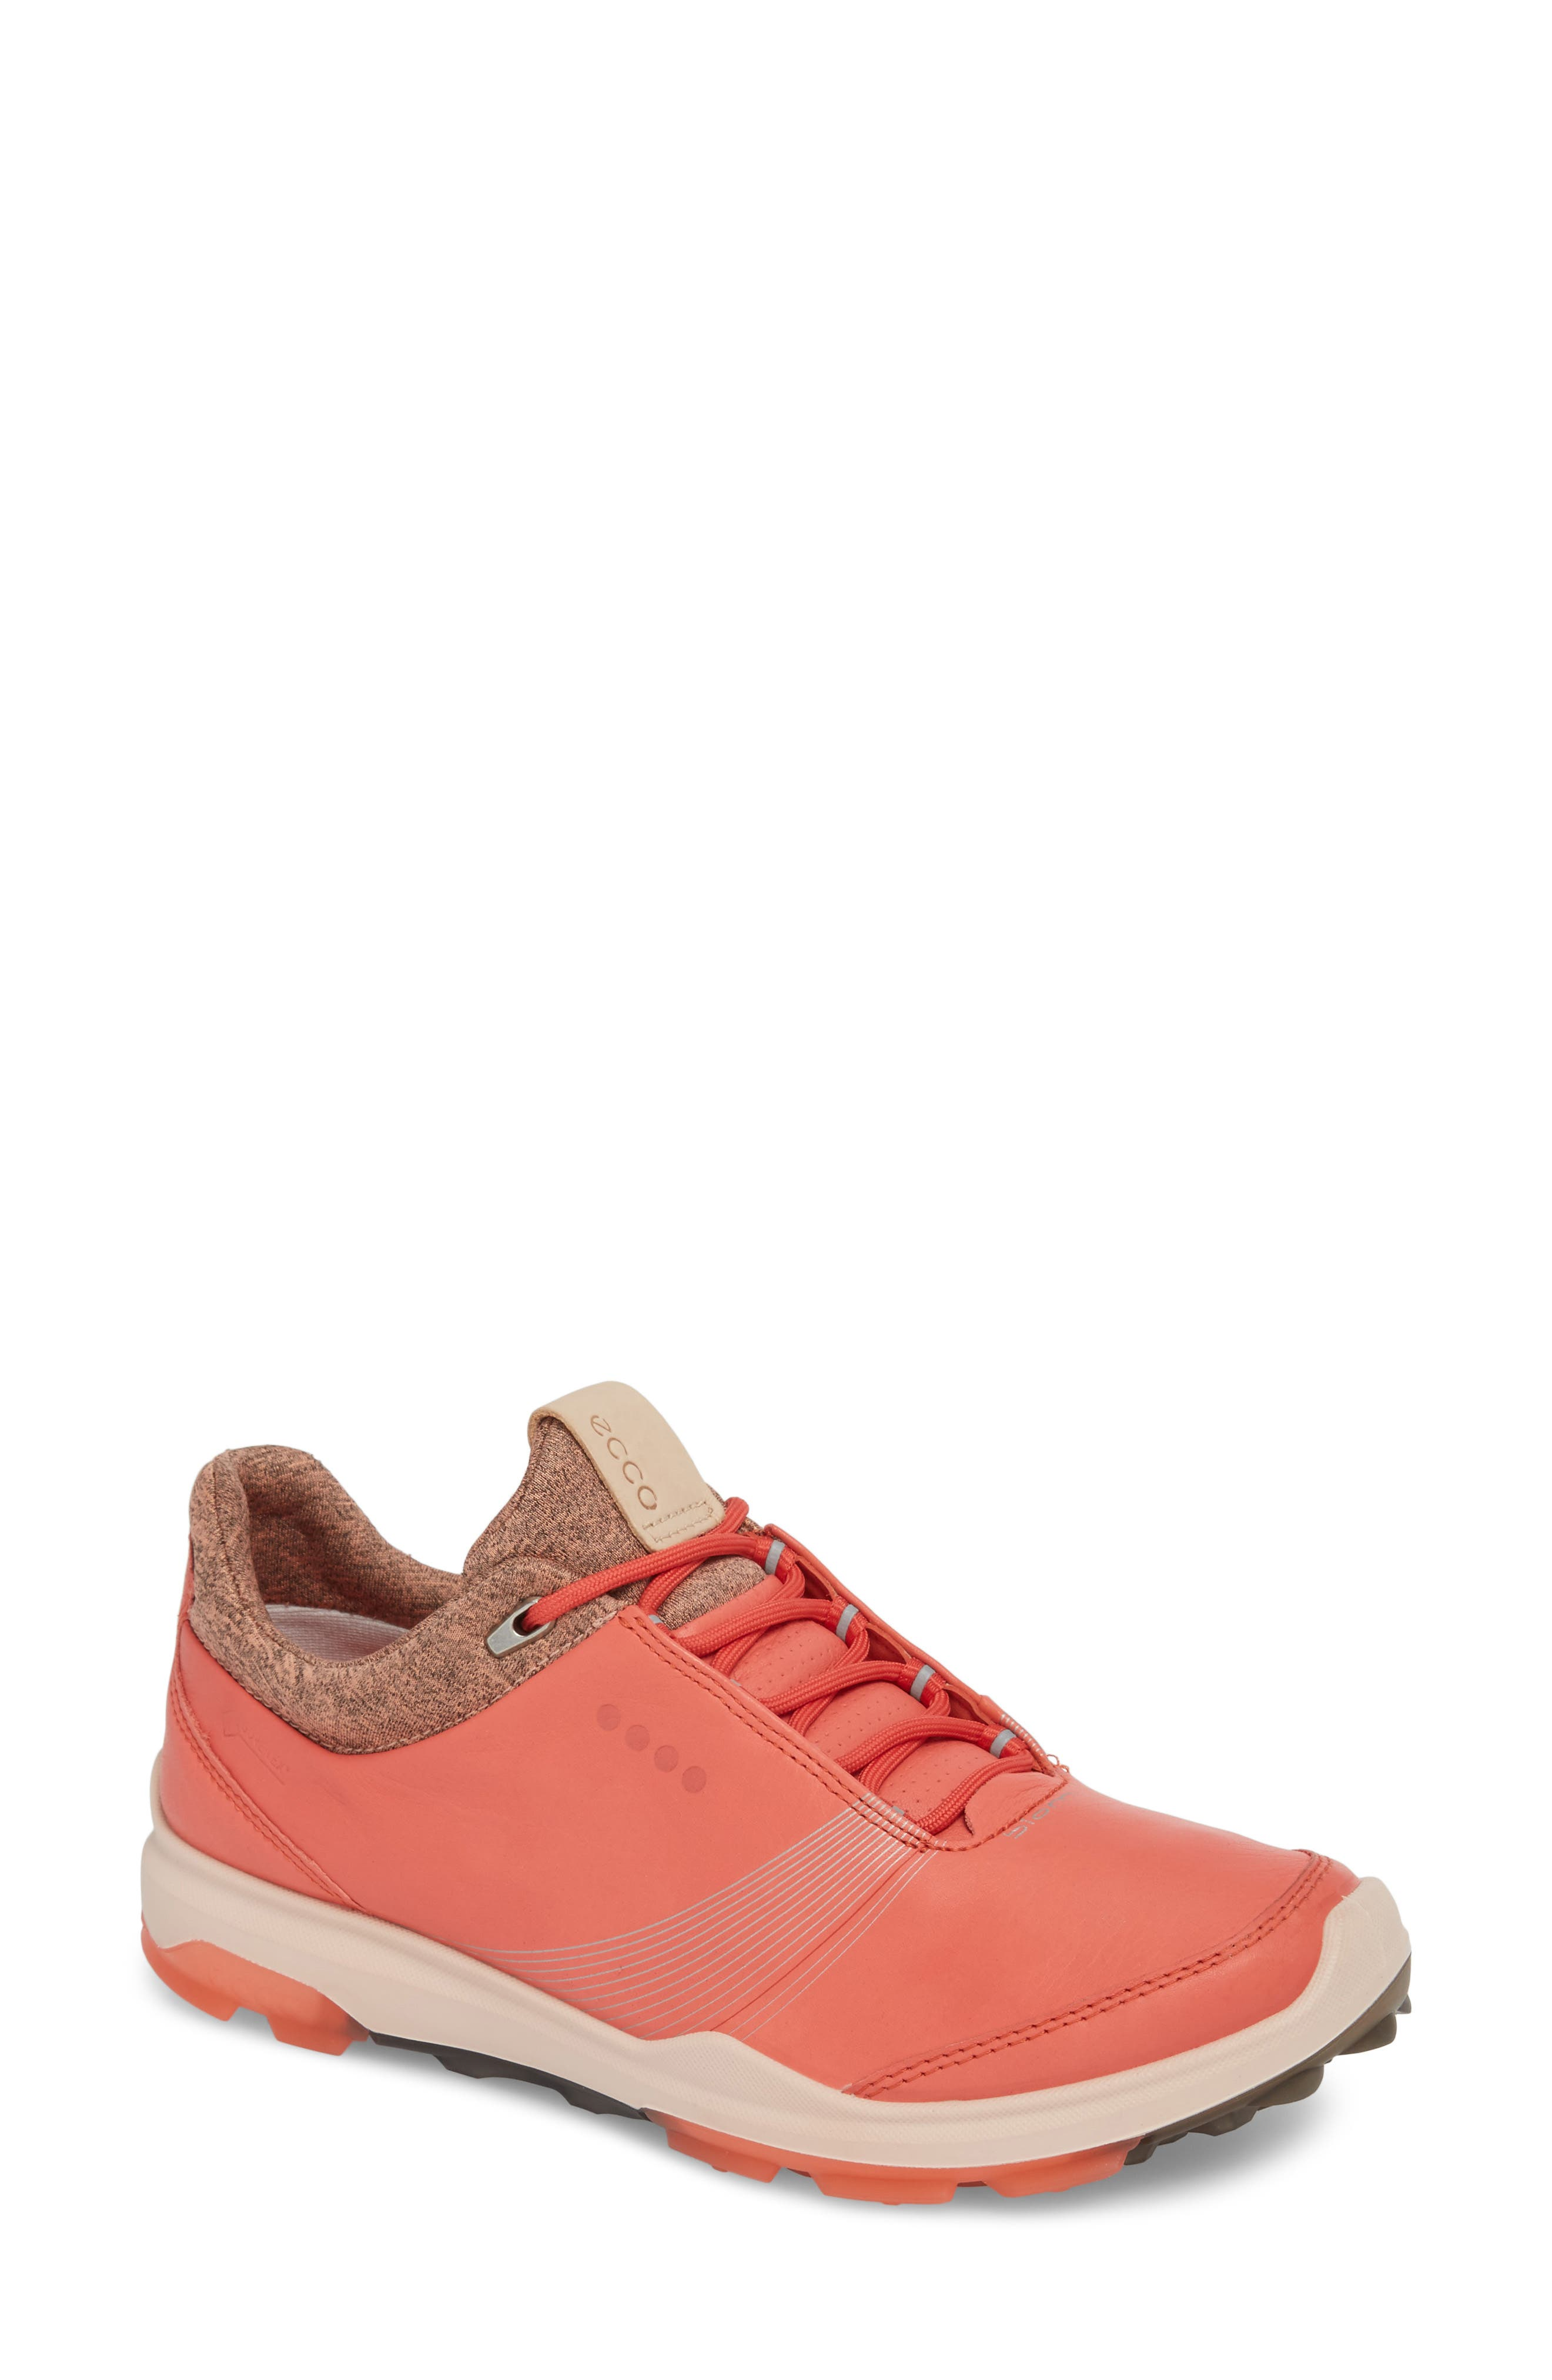 BIOM 2 Hybrid Gore-Tex<sup>®</sup> Golf Shoe,                             Main thumbnail 1, color,                             Spiced Coral Leather